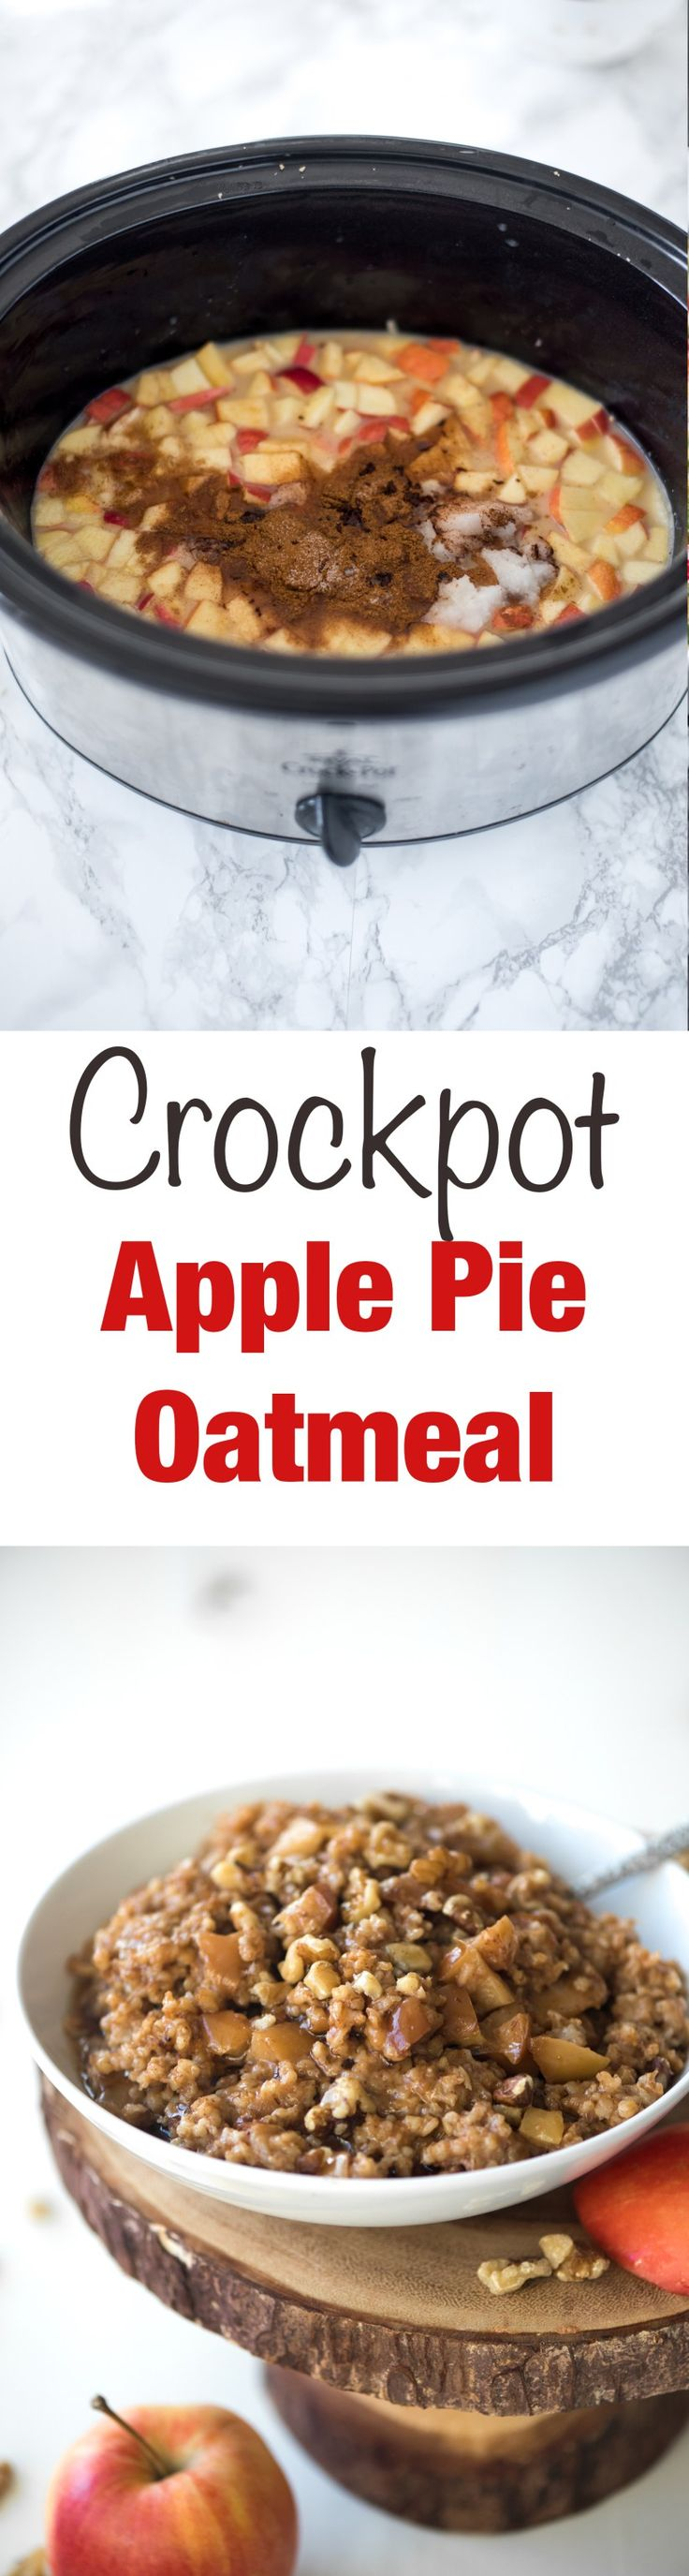 Crockpot Apple Pie Oatmeal- just throw everything into the crockpot the night before and wake up to a delicious healthy breakfast!